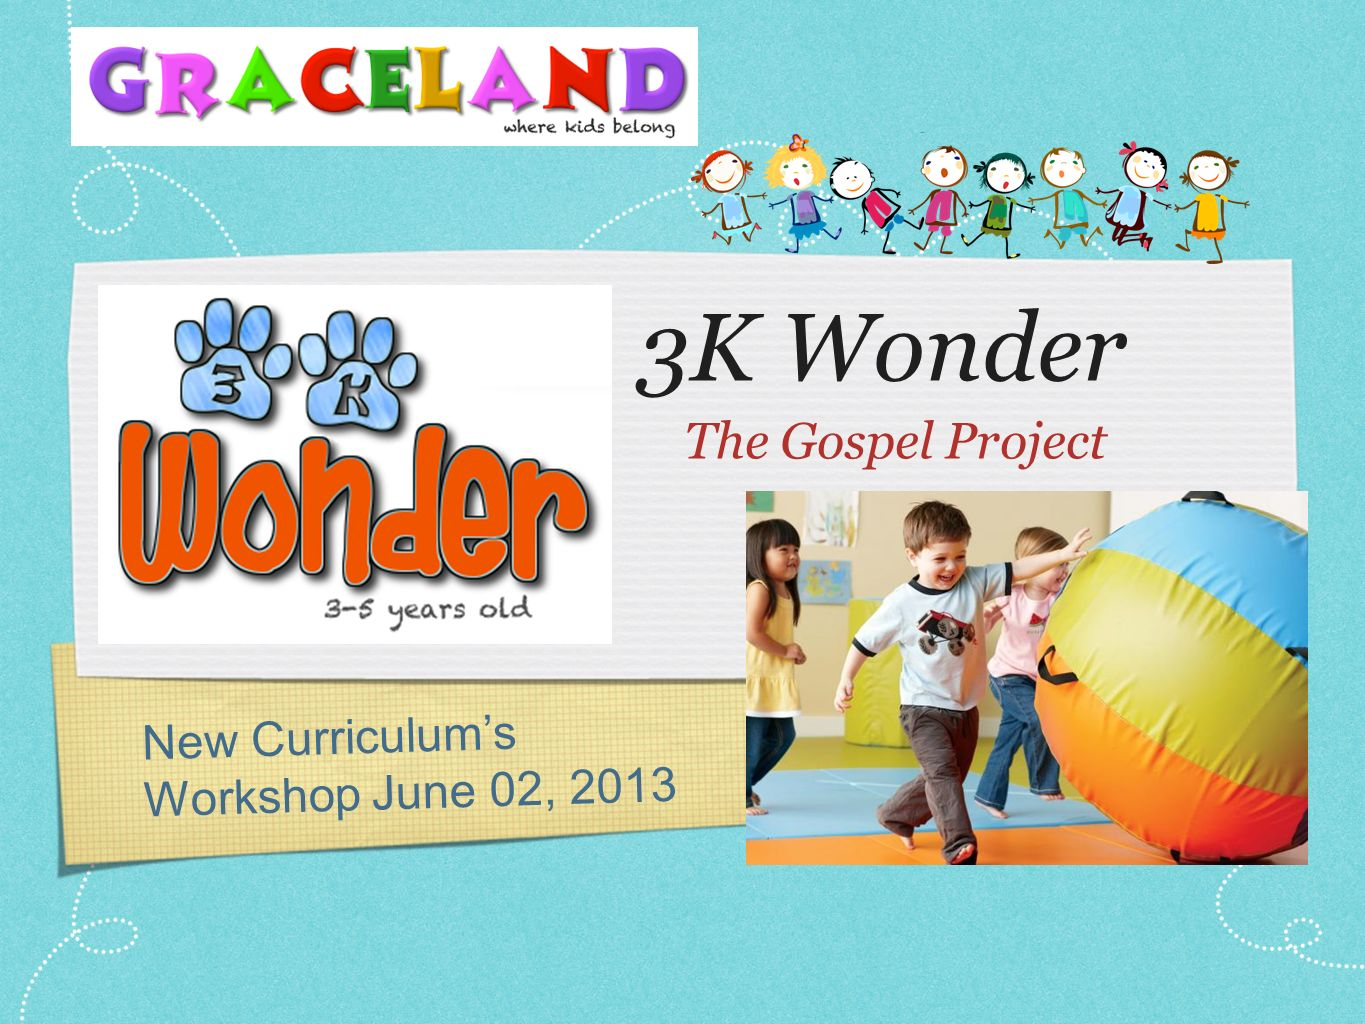 3K Wonder The Gospel Project New Curriculum's Workshop June 02, 2013